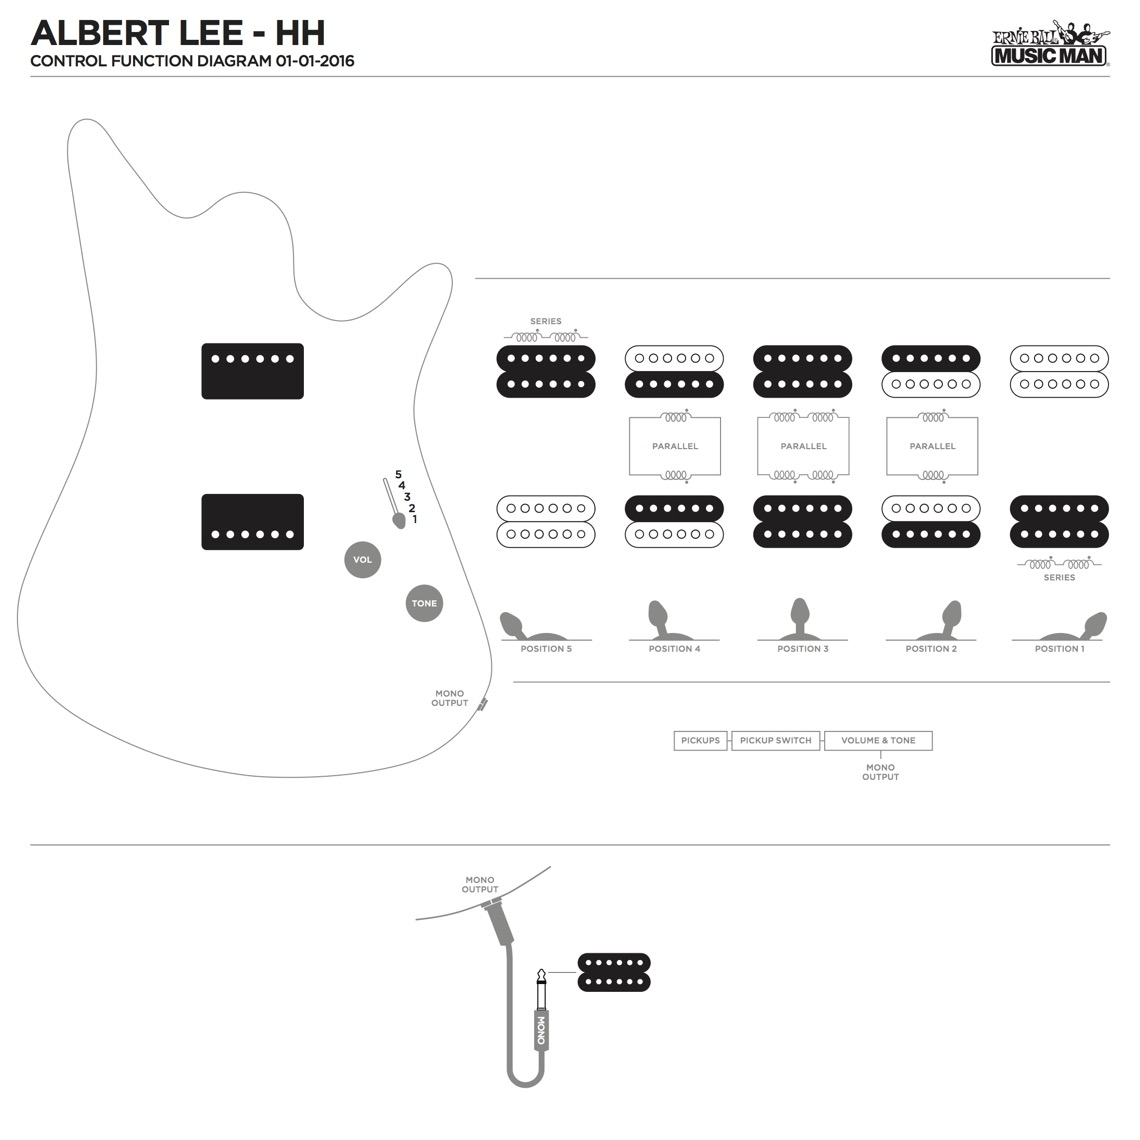 Albert Lee Hh Guitars Ernie Ball Music Man Free Download Sss Wiring Diagram Pickup Configuration 1 Pdf